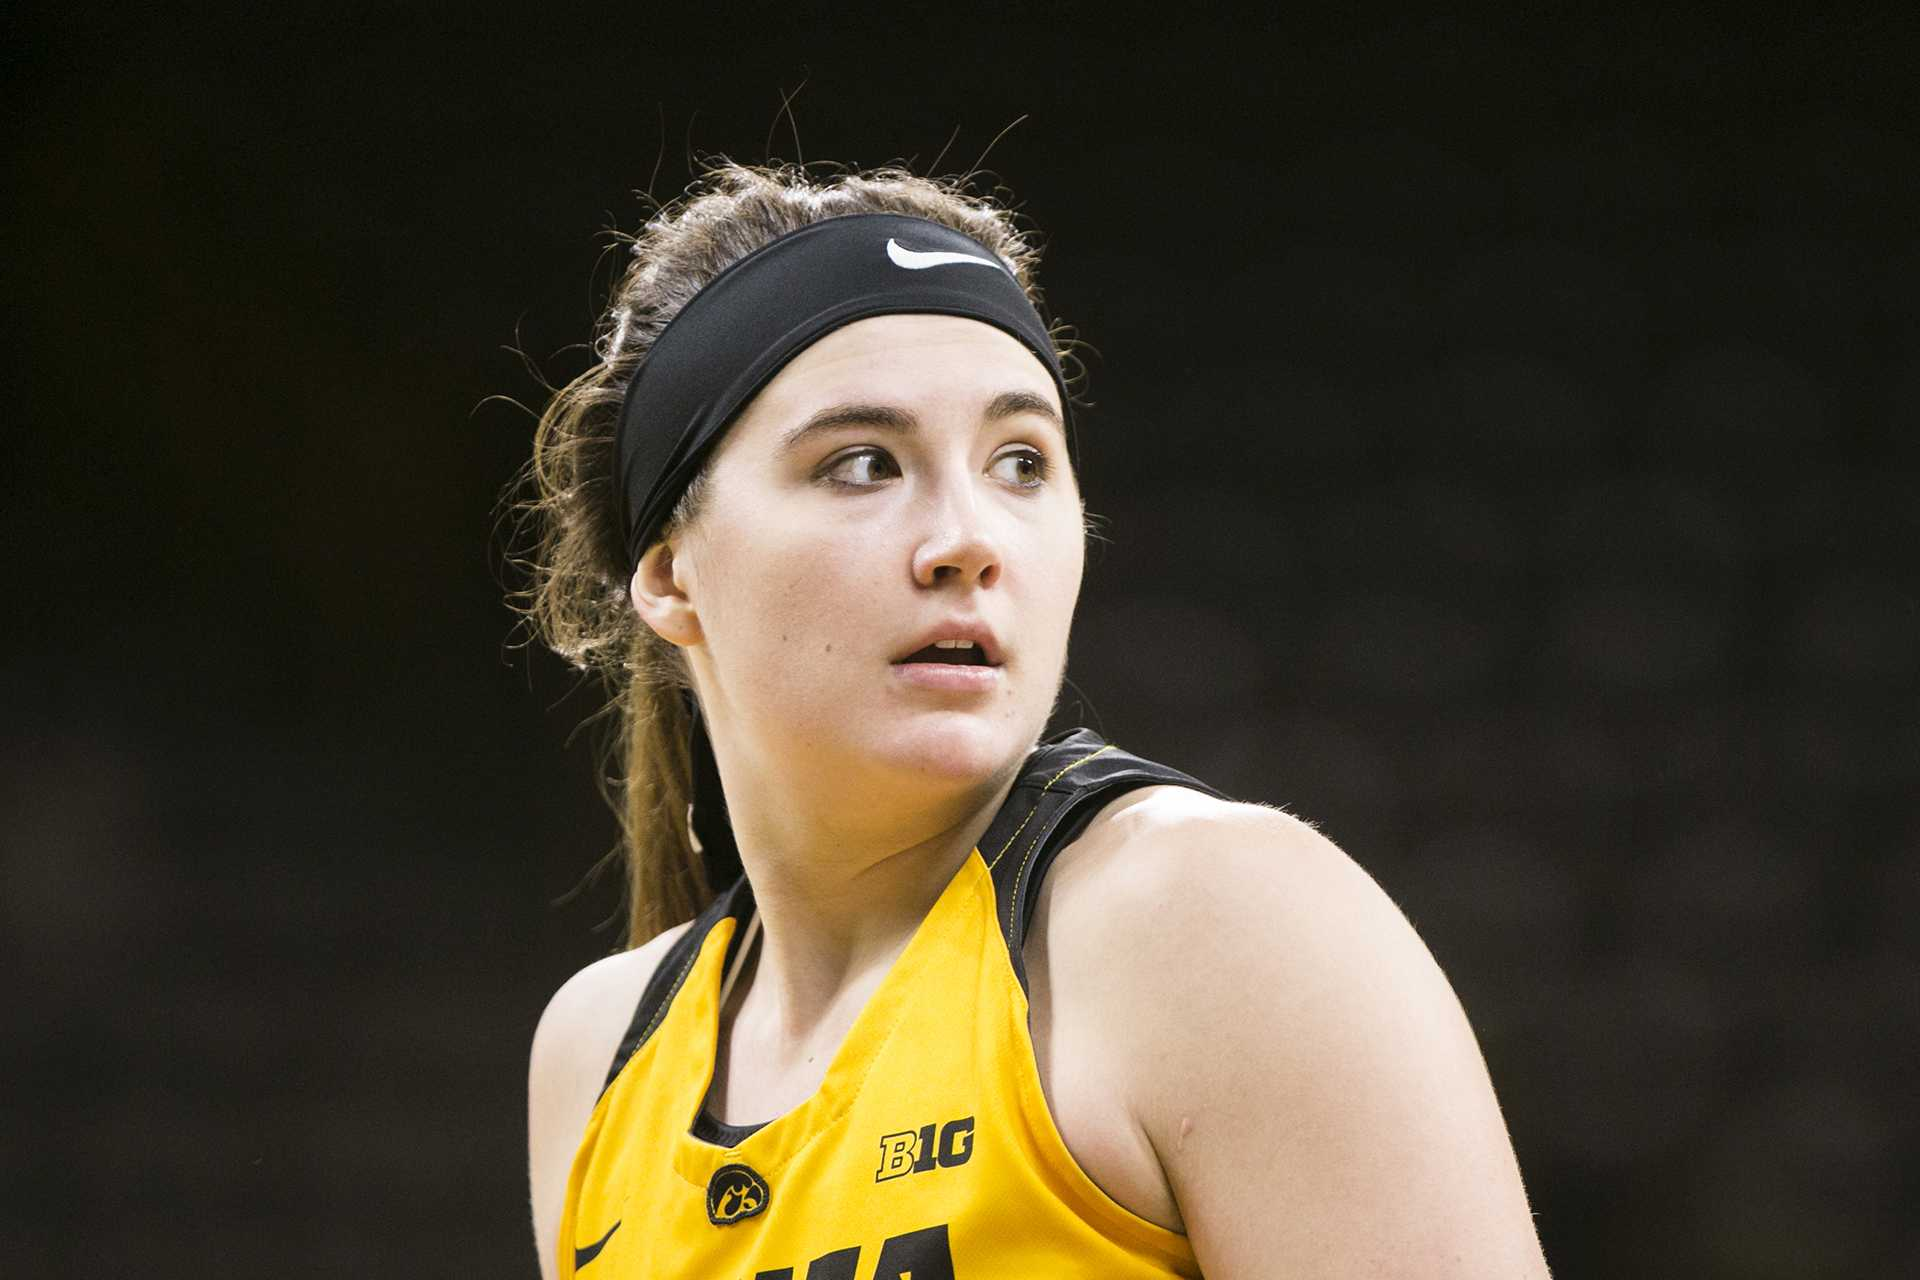 Iowa center Megan Gustafson looks to the bench during the Iowa/Western Michigan women's basketball game in Carver-Hawkeye Arena on Sunday, Nov. 19, 2017. The Hawkeyes defeated the Broncos, 79-56. (Joseph Cress/The Daily Iowan)